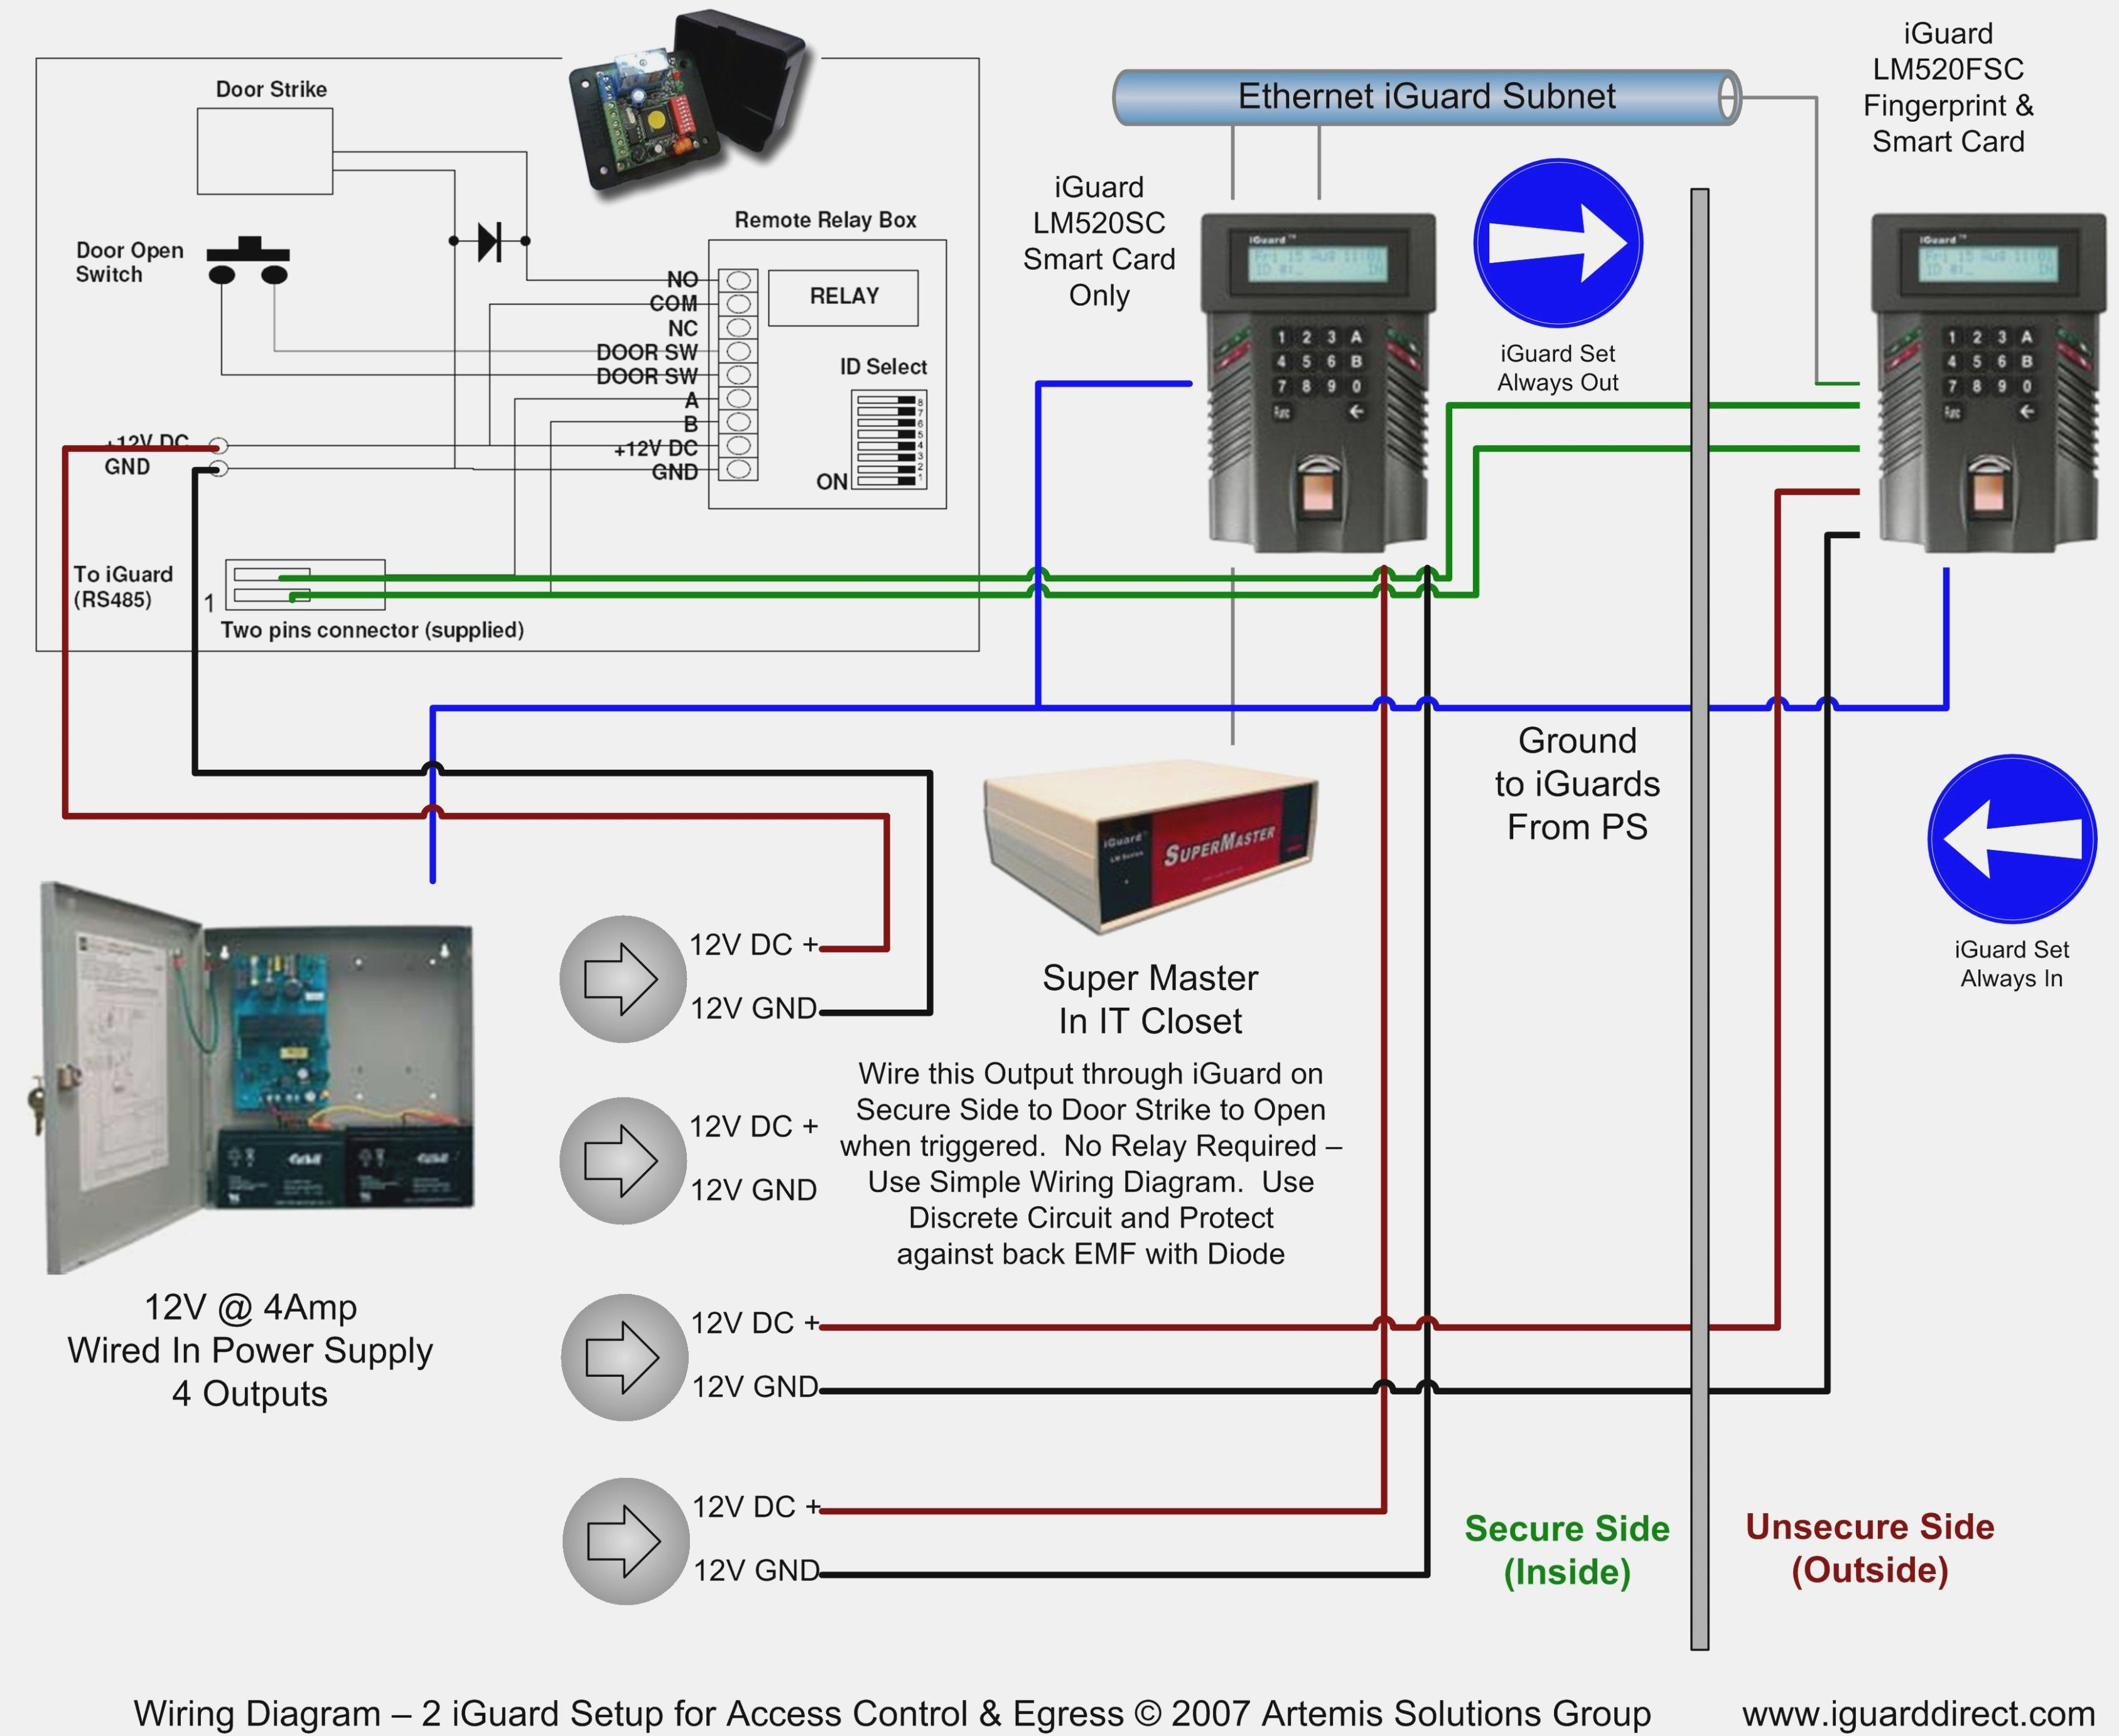 Awesome Wiring Diagram Downlights Diagrams Digramssample Diagramimages Wiringdiagramsample Wiringdi Thermostat Wiring Thermostat Installation House Wiring